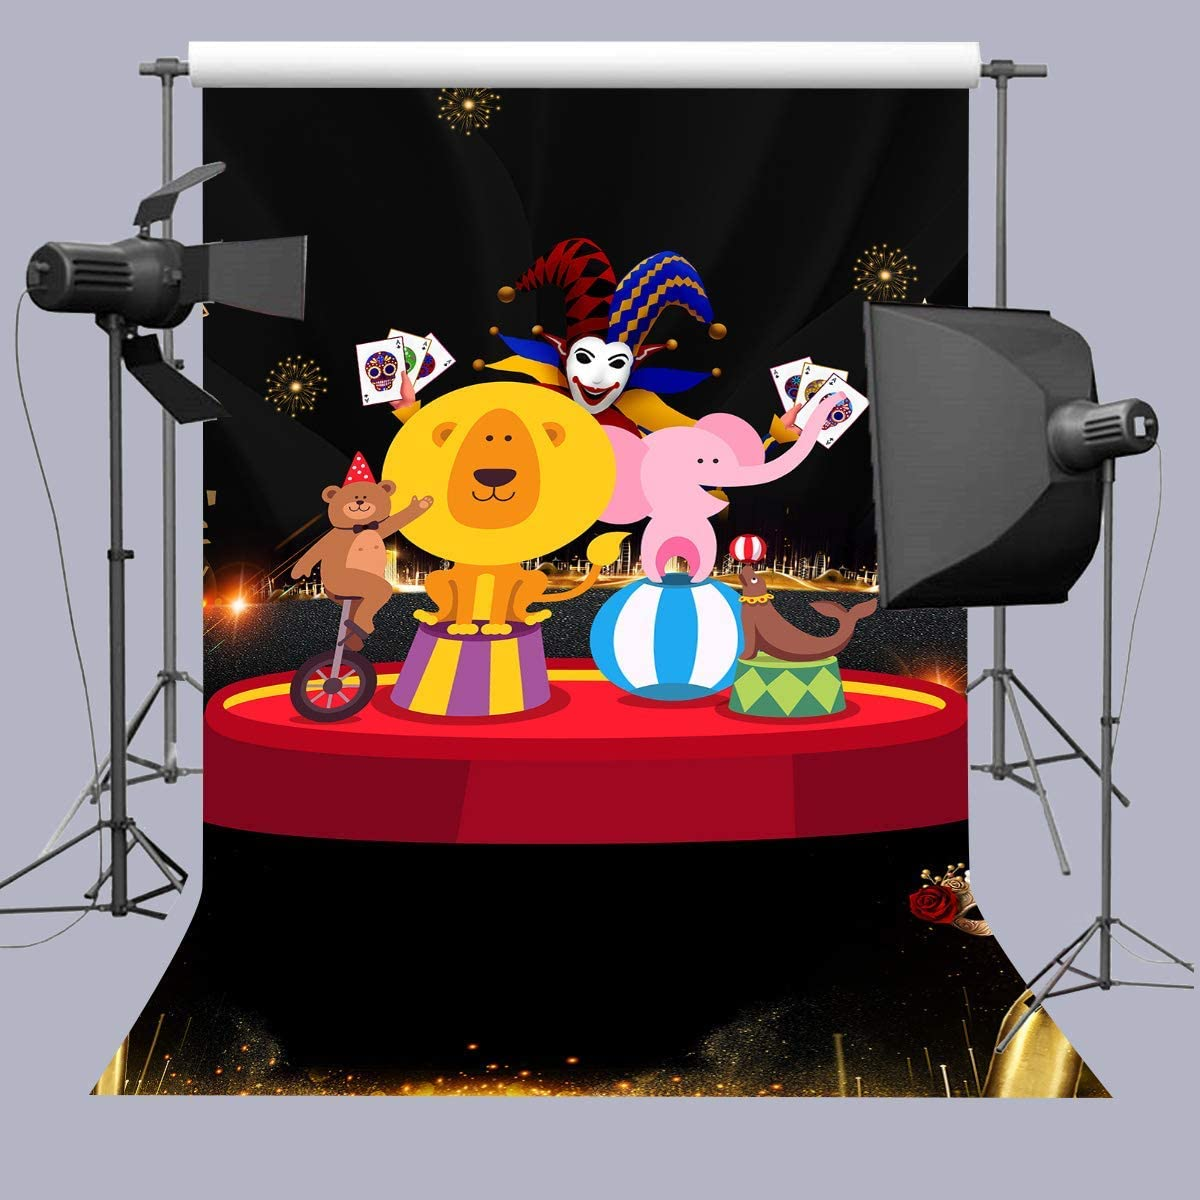 10x6.5ft Magic Academy Background Magic Wand Backdrop for Children Party Photography Props Photo Studio Banner DSFU181